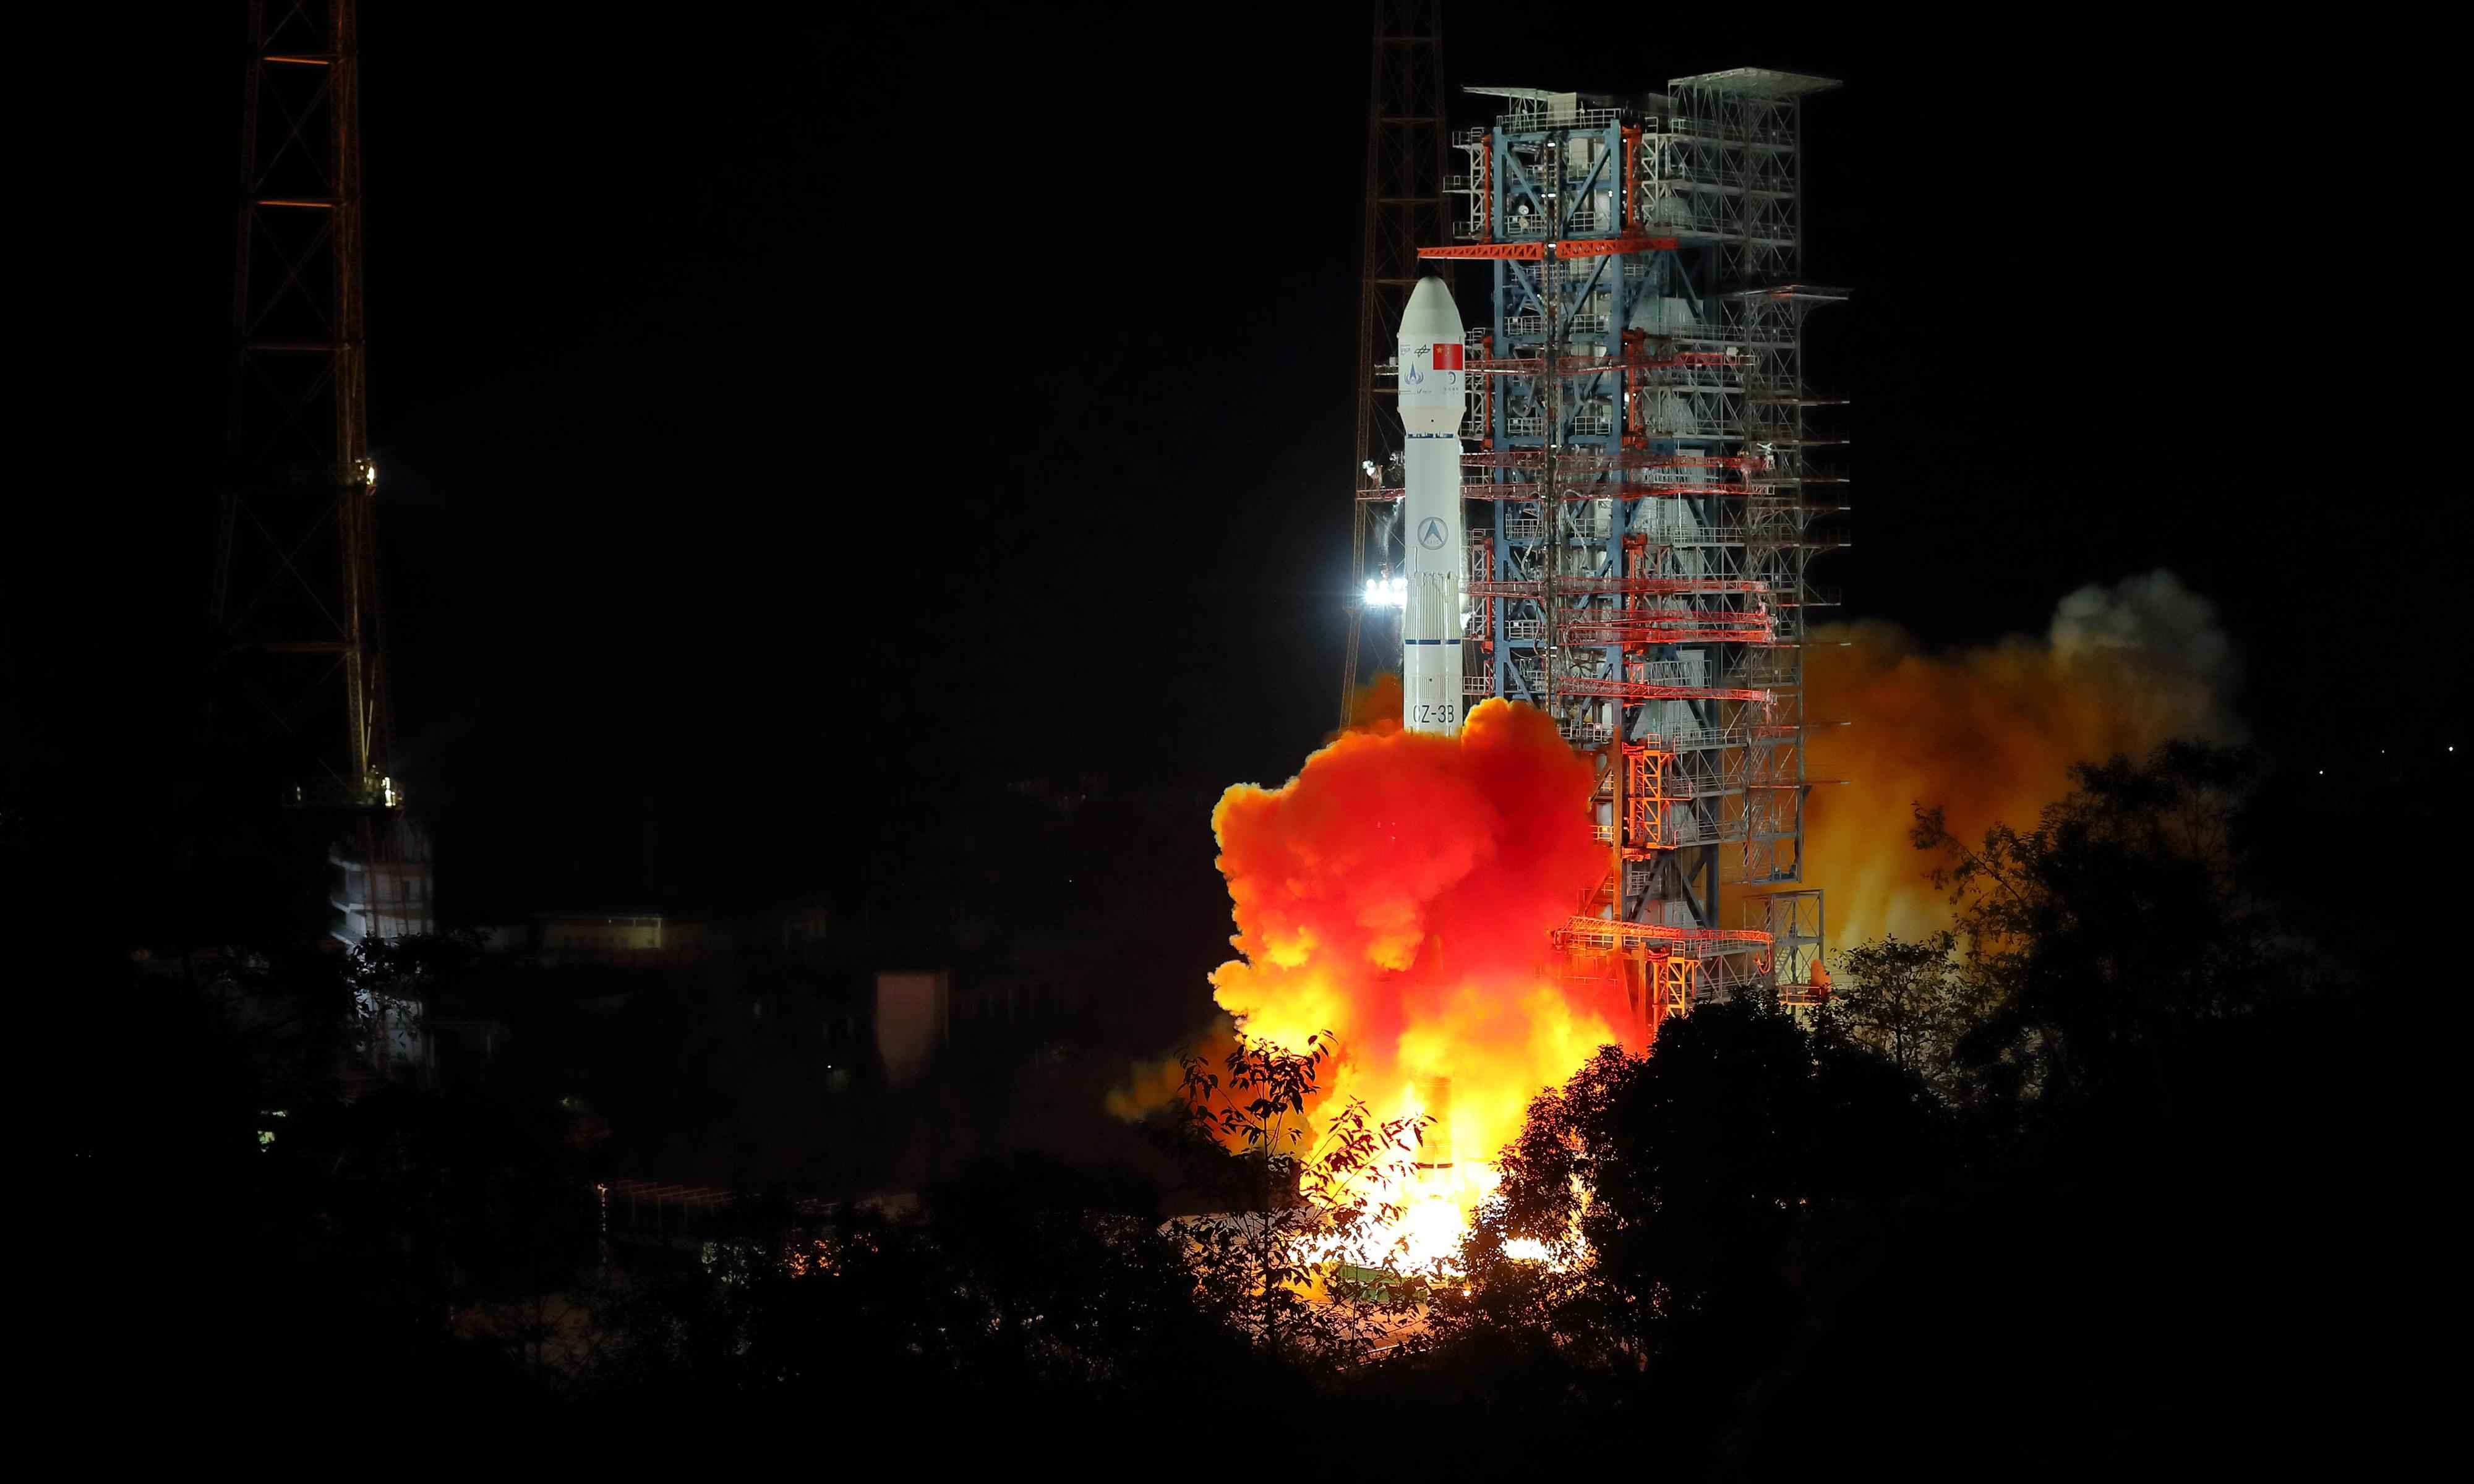 Battlefield moon: how China plans to win the lunar space race